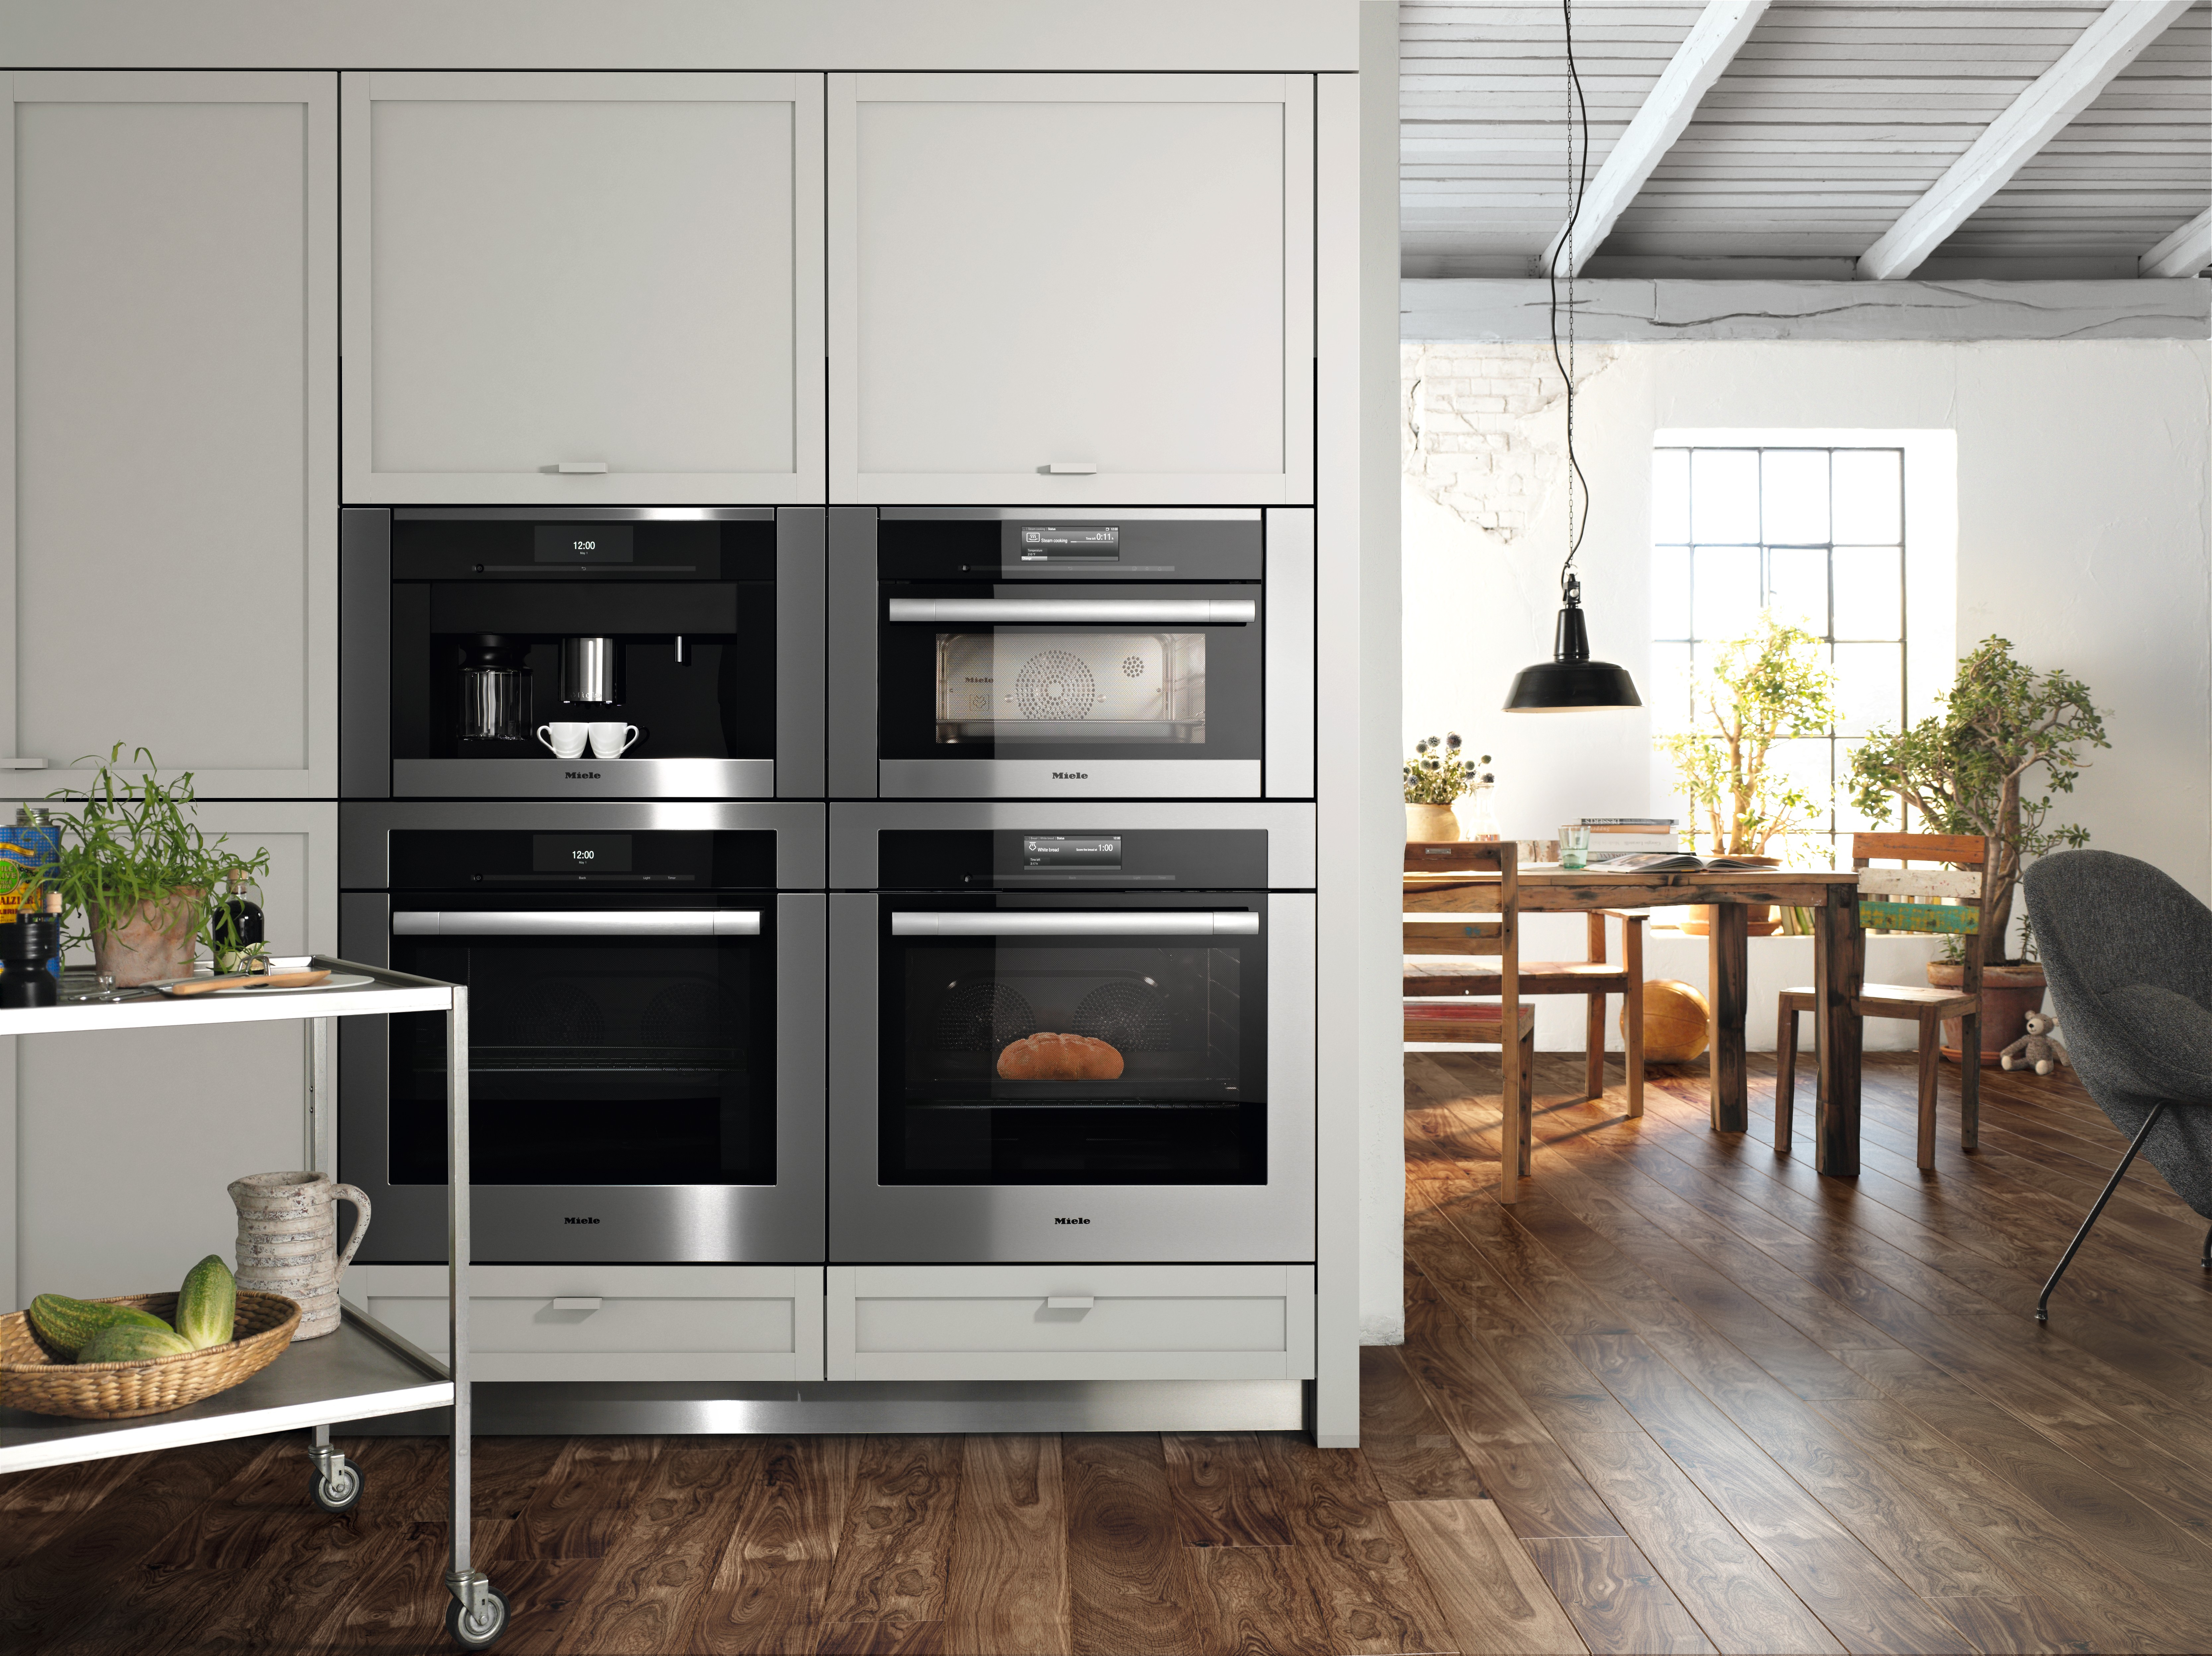 Miele - Kitchen Package Promotion - Get up to $1800 Cash Back